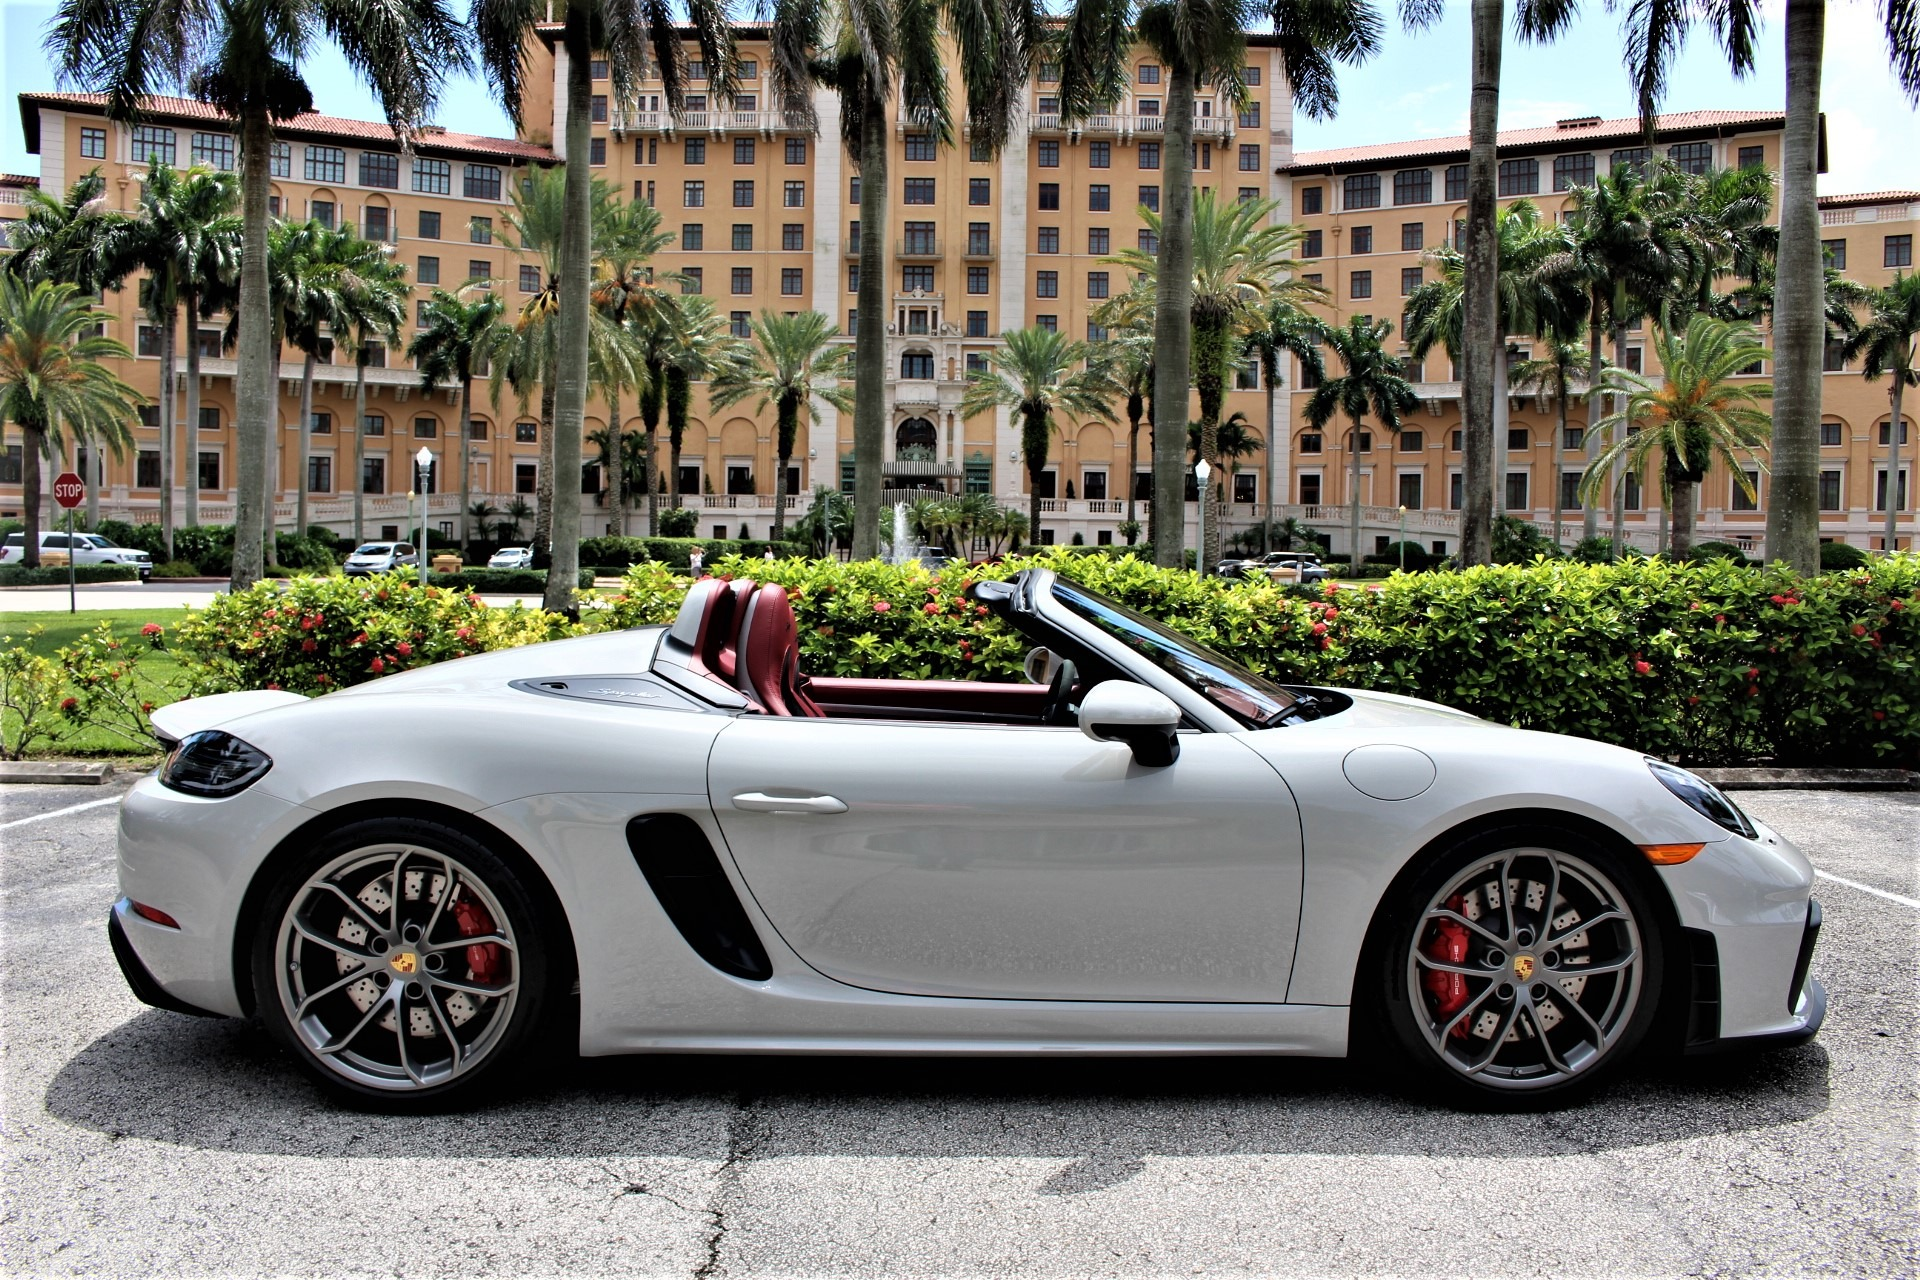 Used 2021 Porsche 718 Boxster Spyder for sale Sold at The Gables Sports Cars in Miami FL 33146 1